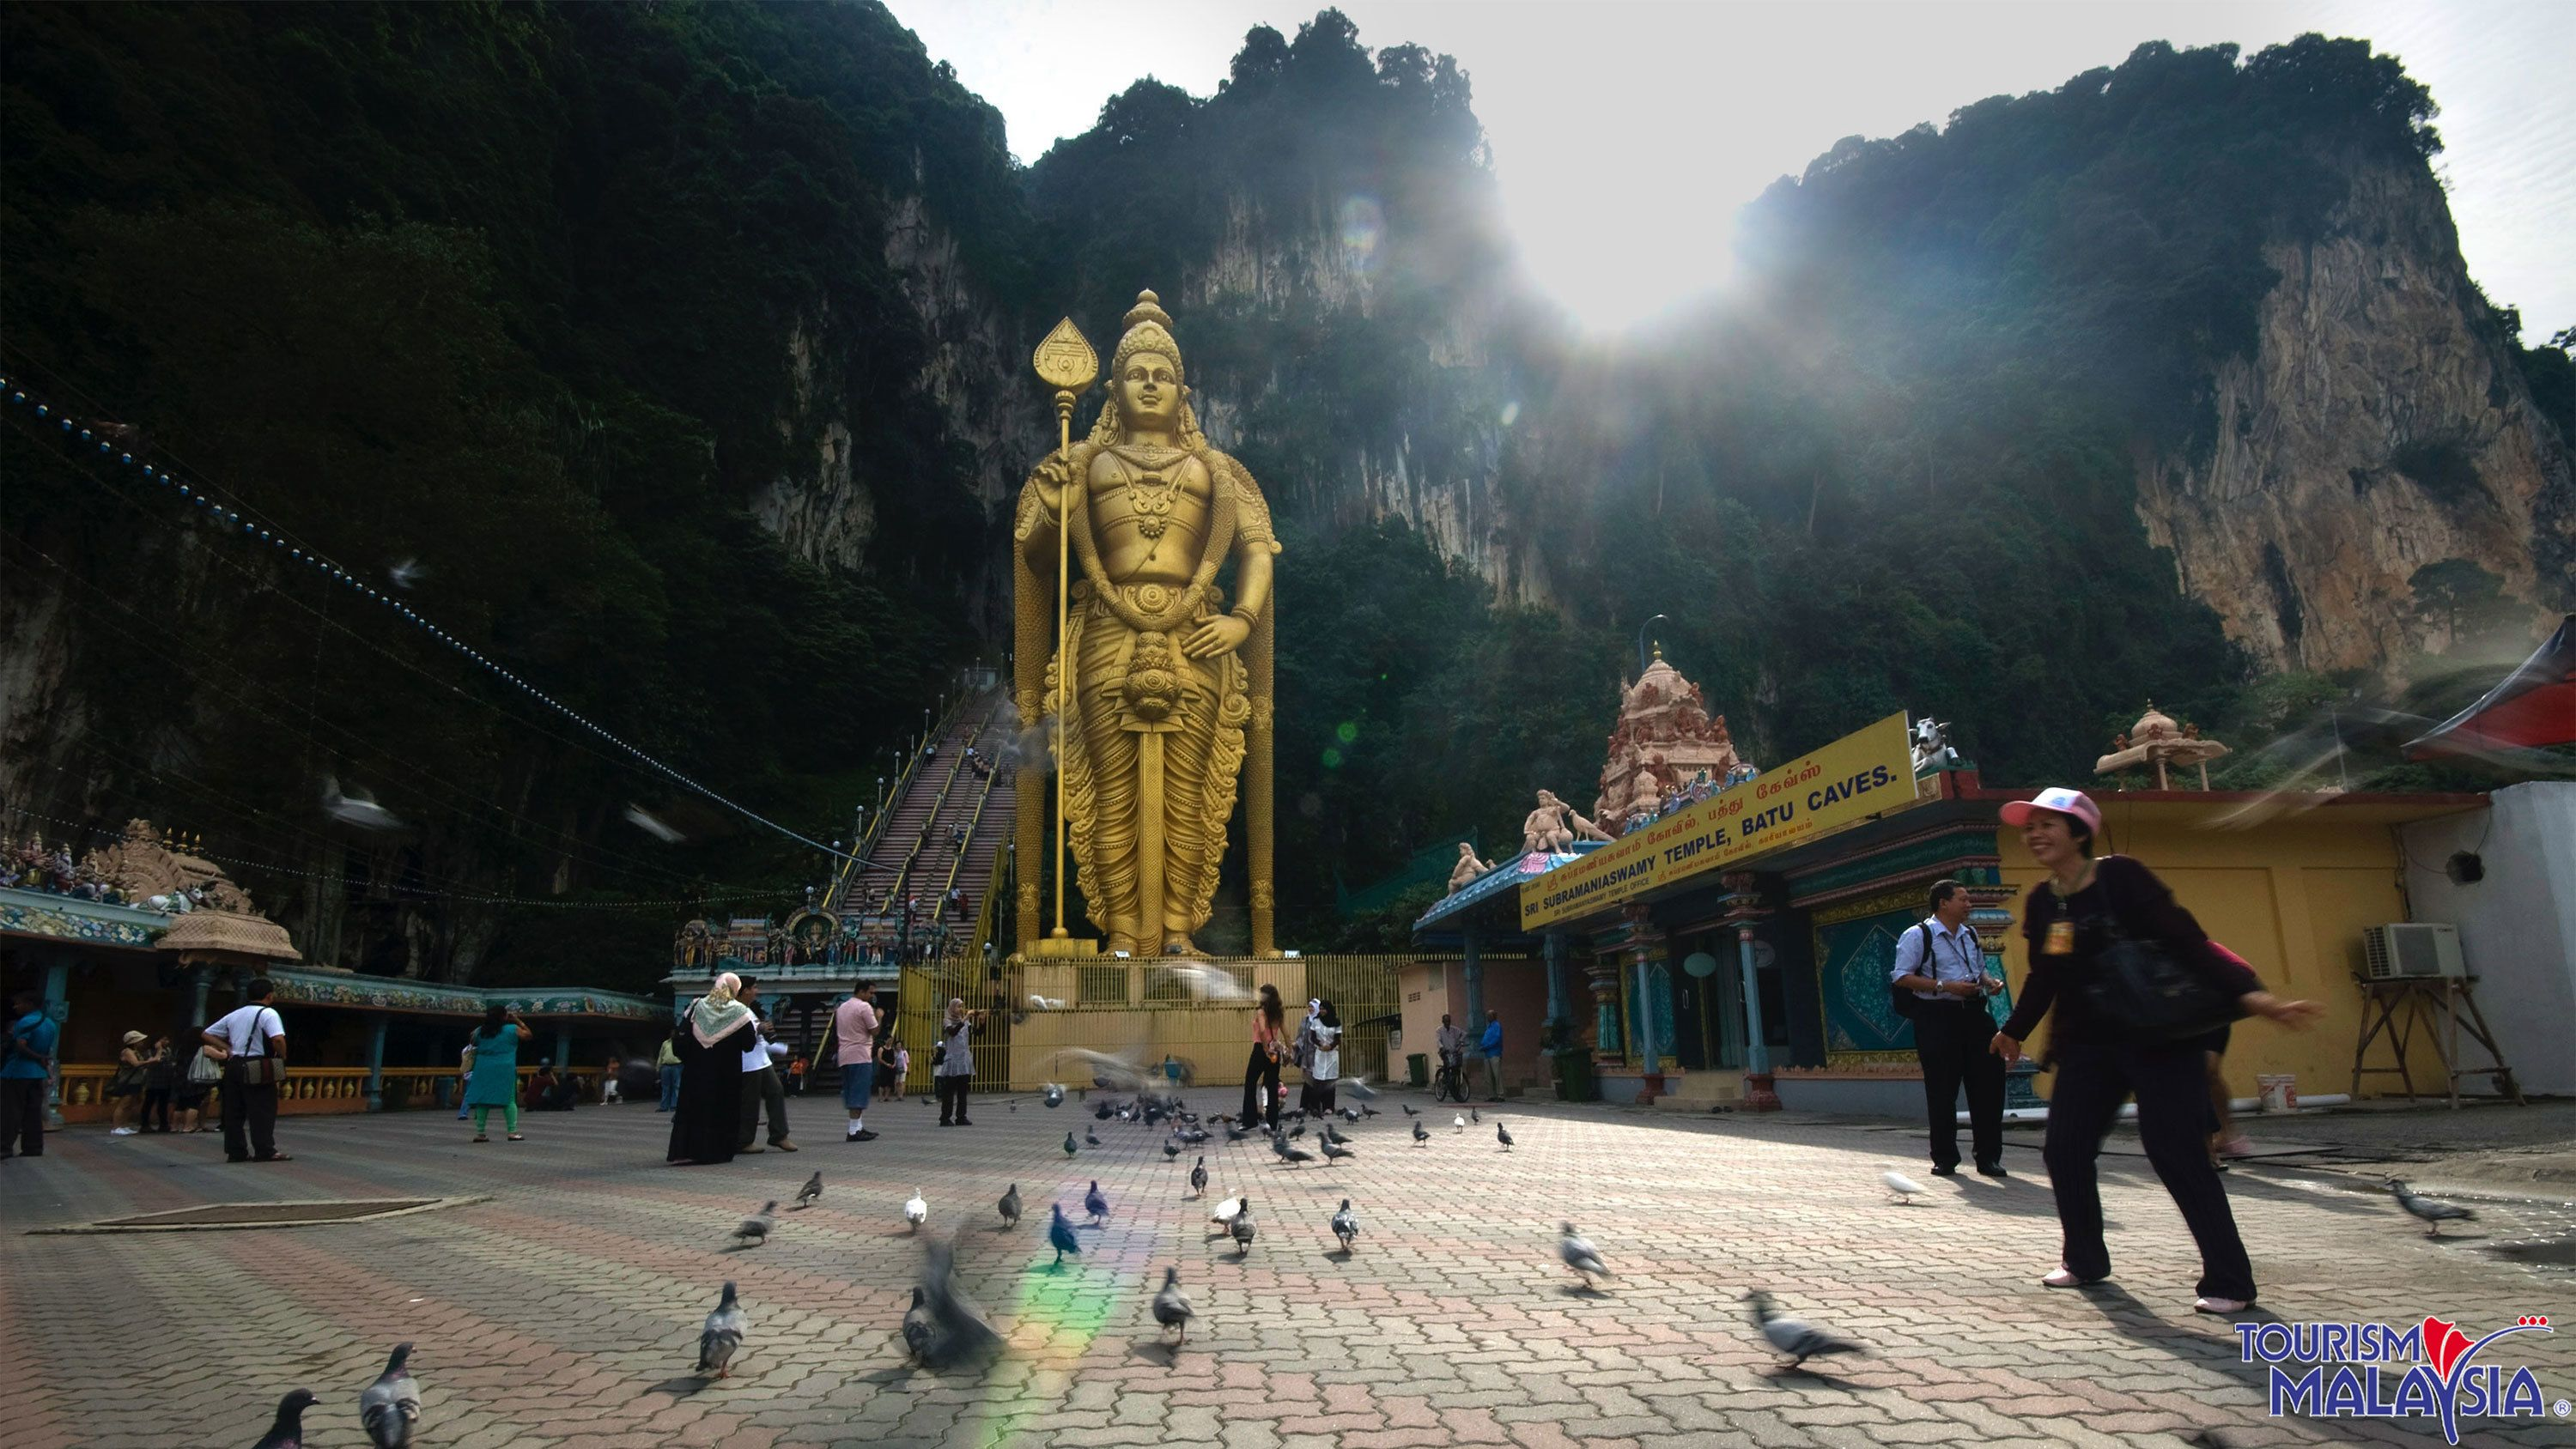 Country, Batu Caves & Handicrafts Half-Day Tour